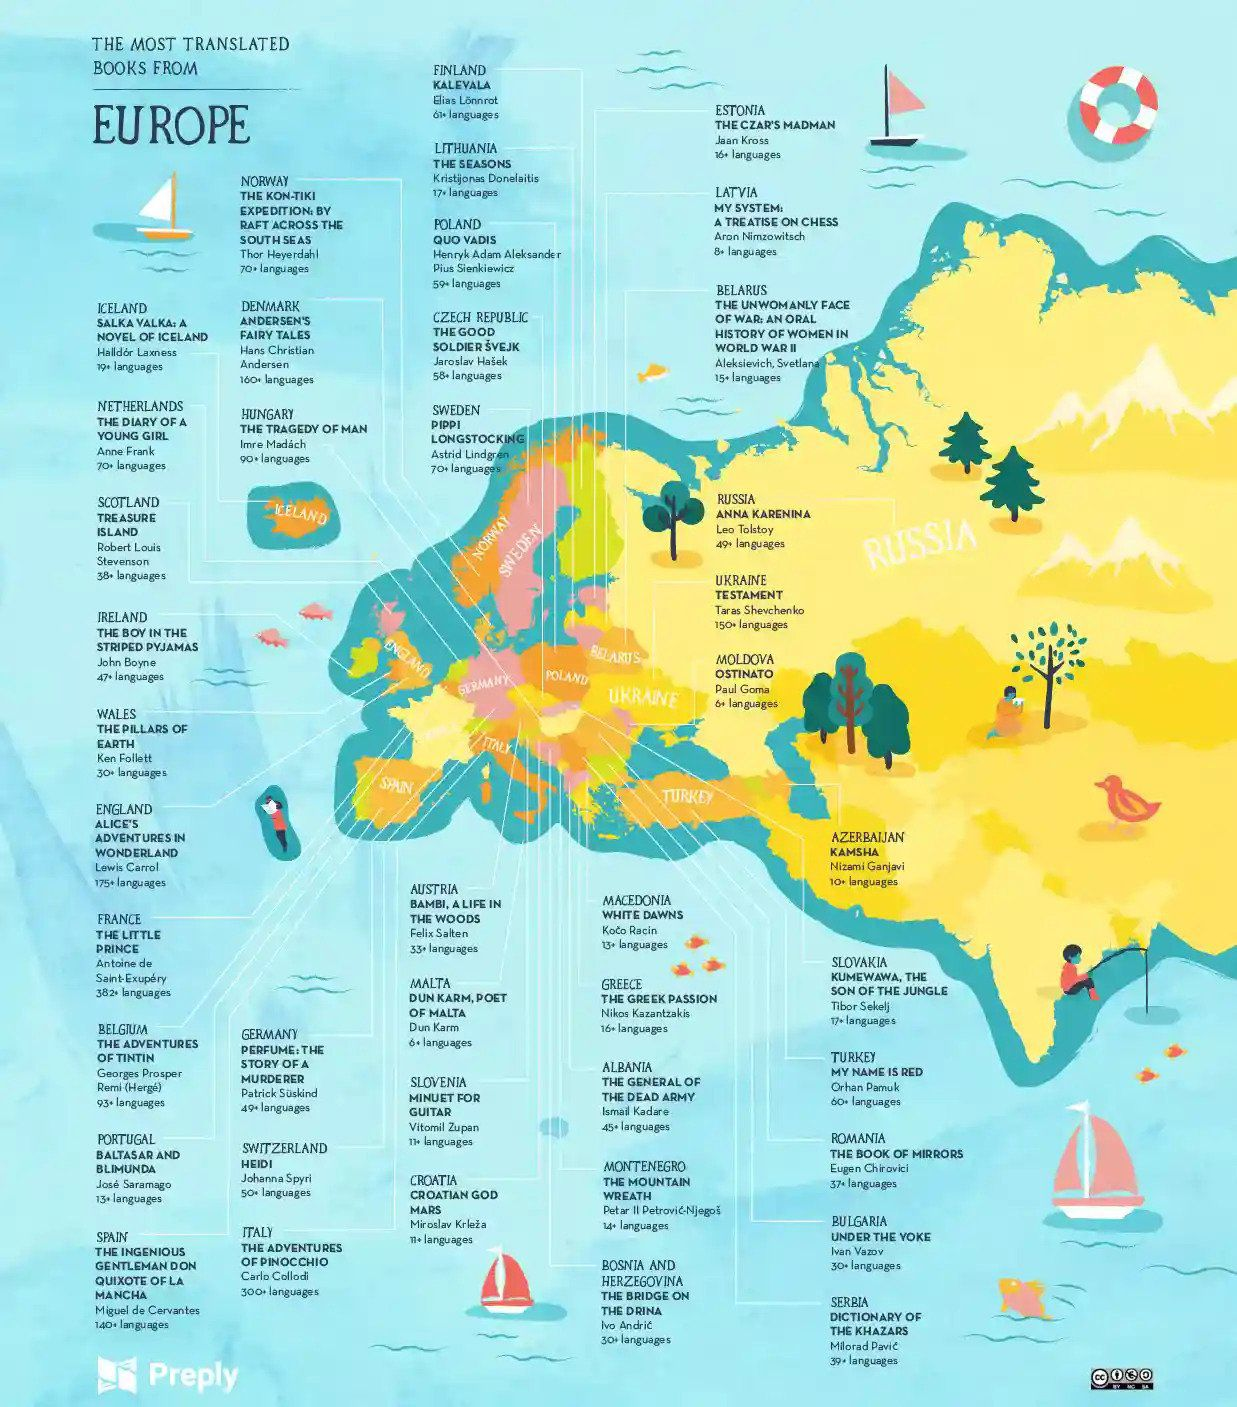 Most translated books in Europe map